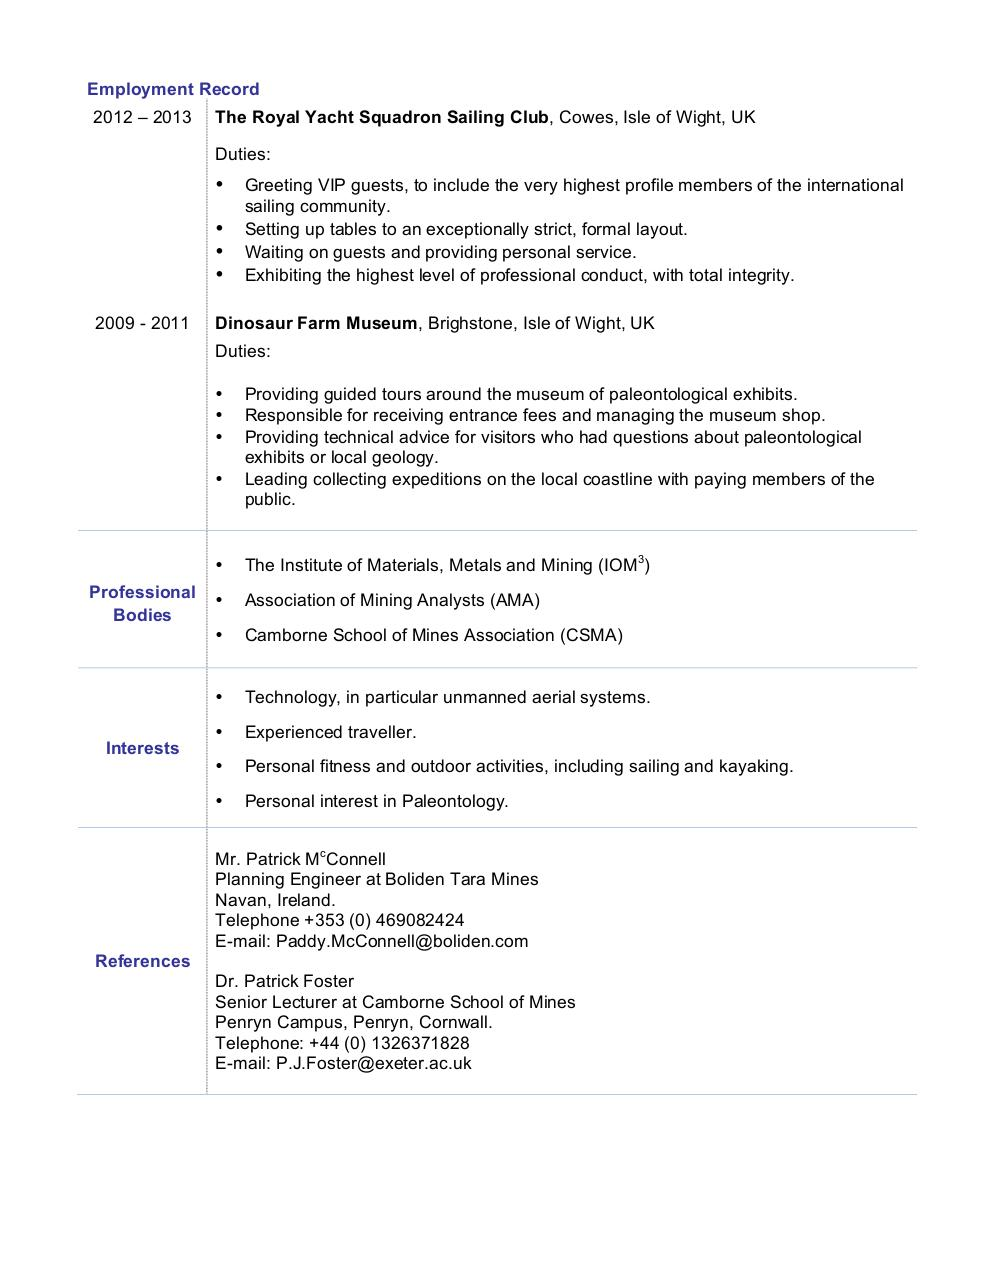 microsoft word james dolby cv civil engineering graduate doc report spam or adult content